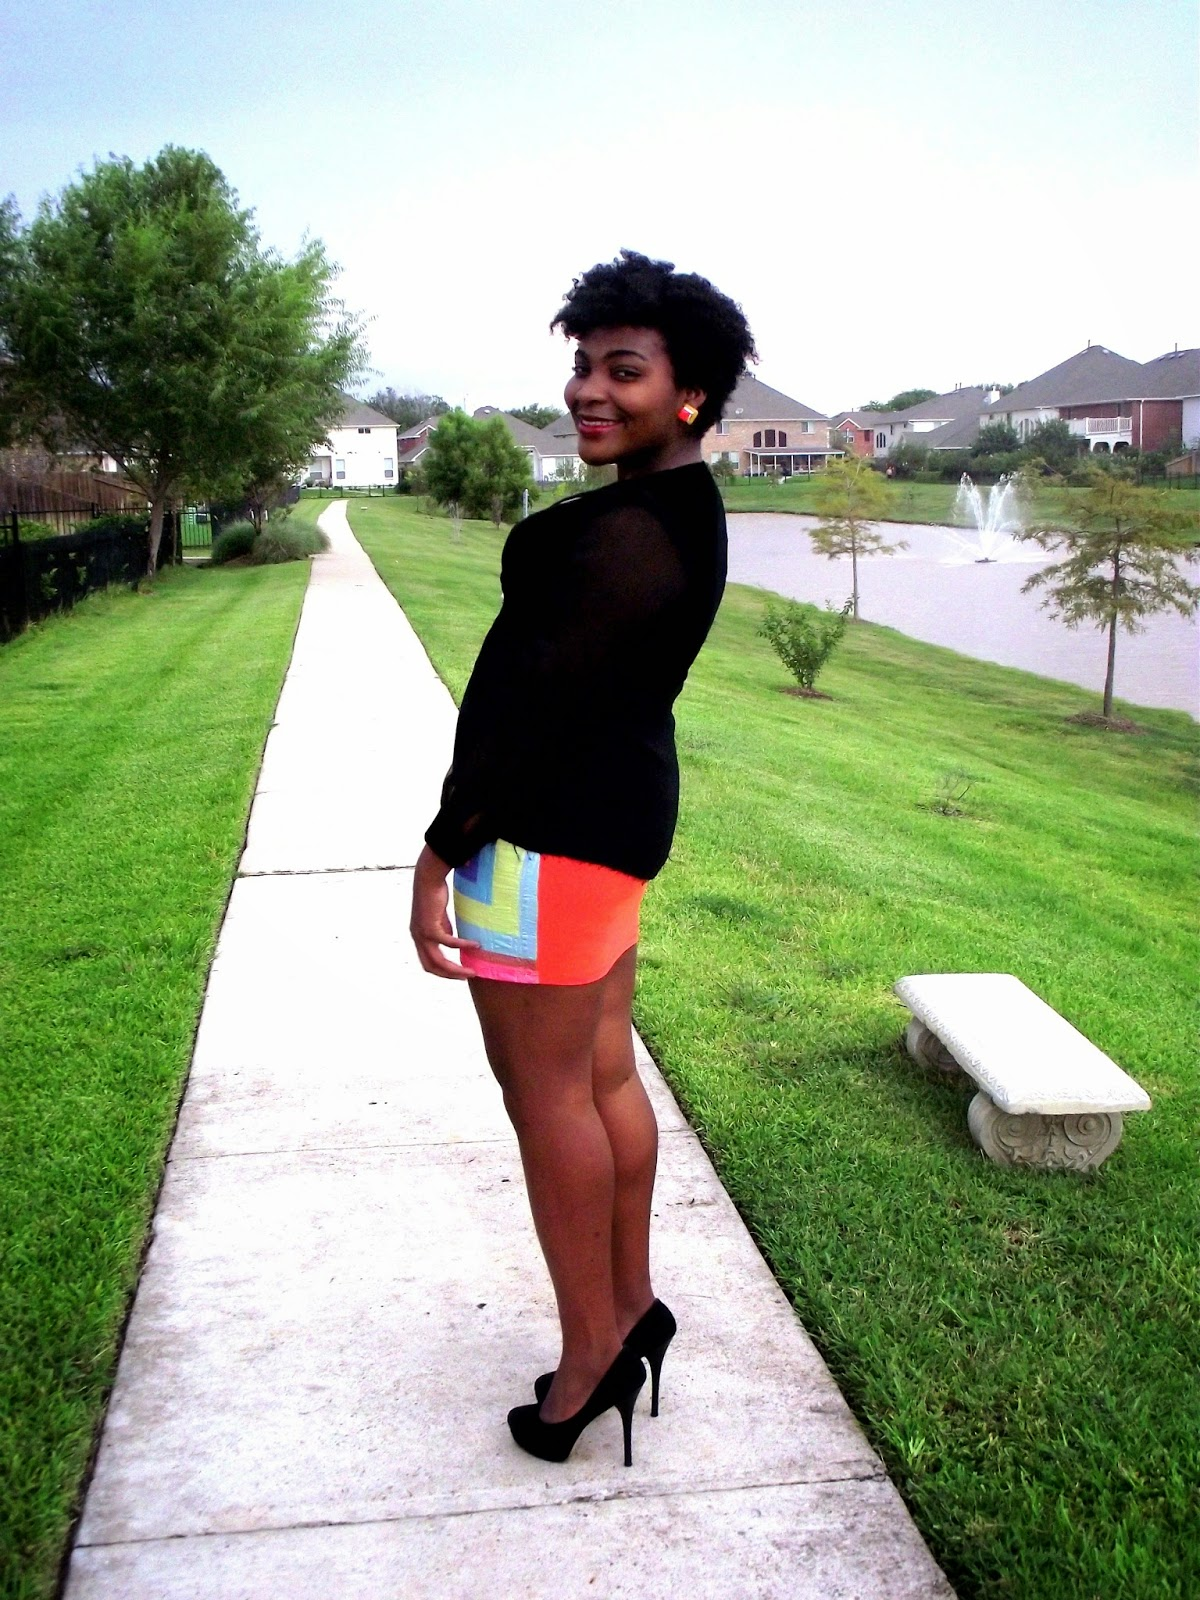 Date Night, color block, bodycon dress, mini dress, colorful dress, ebay dress, black blazer, sheer sleeves, short dress, zara heels, platforms, size 11 shoes, five inch heels, natural hair, twa, wash and go, natural hair fashion, natural hair style